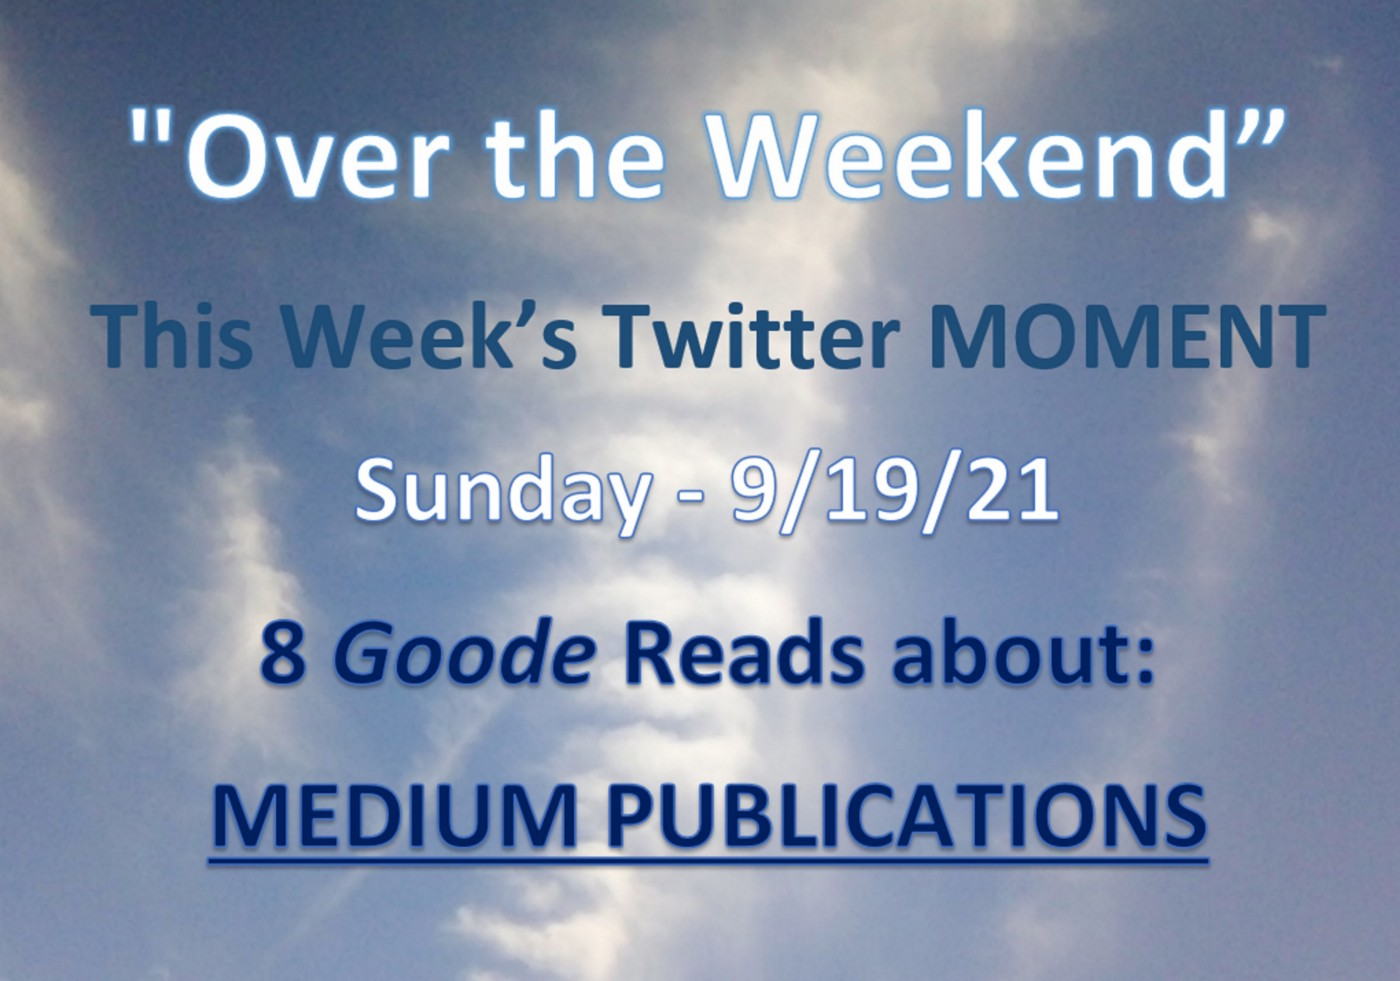 Over the Weekend feature cover image